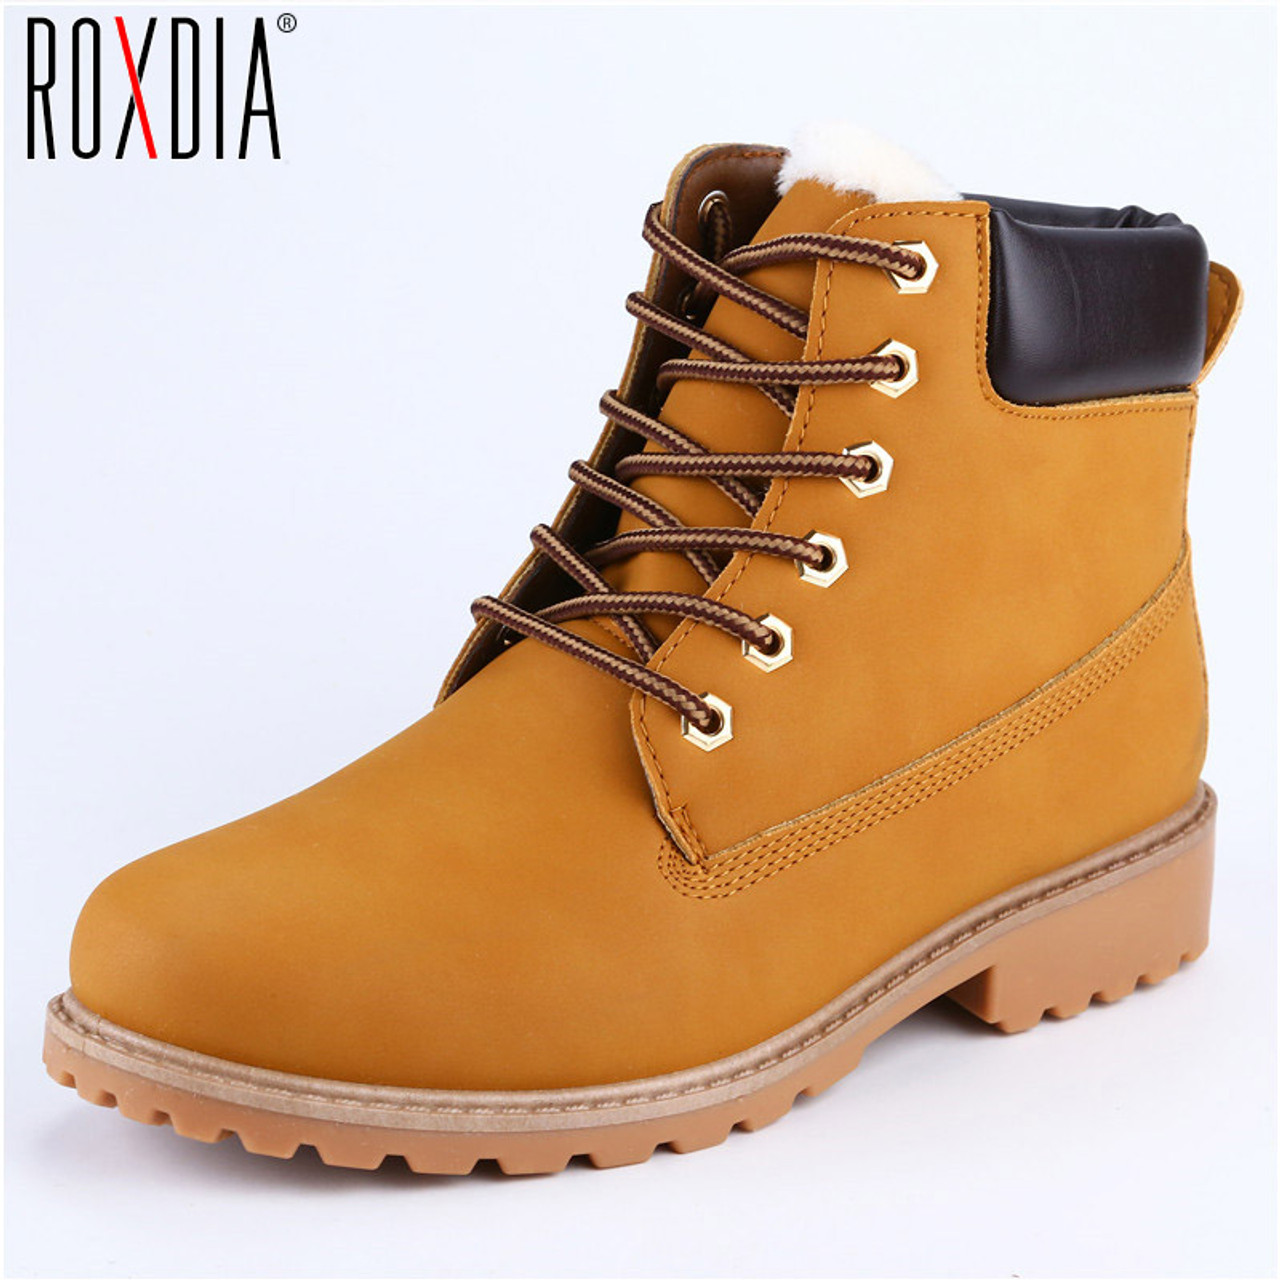 307f0bbd92b Faux Suede Leather Men Boots Spring Autumn And Winter Man Shoes Ankle Boot  Men's Snow Shoe Work Plus Size 39-46 RXM560